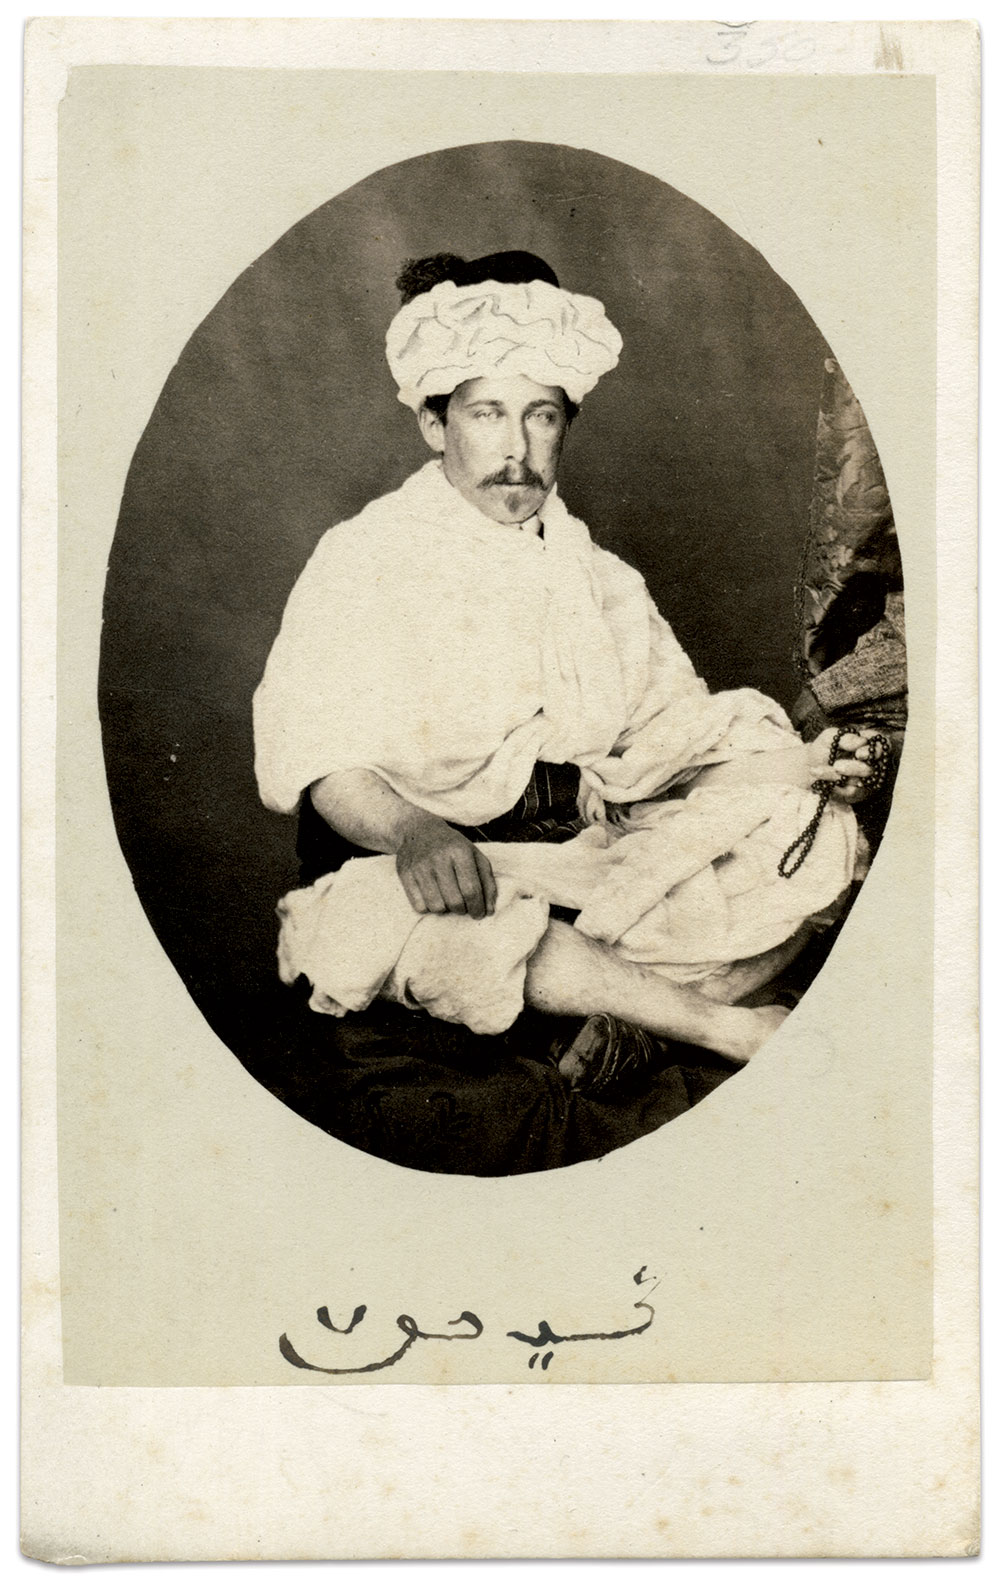 Turban, Robe, and Prayer Beads: Gihon in the costume of the Jebala people of northwestern Morocco. Carte de visite by an anonymous photographer. Author's Collection.